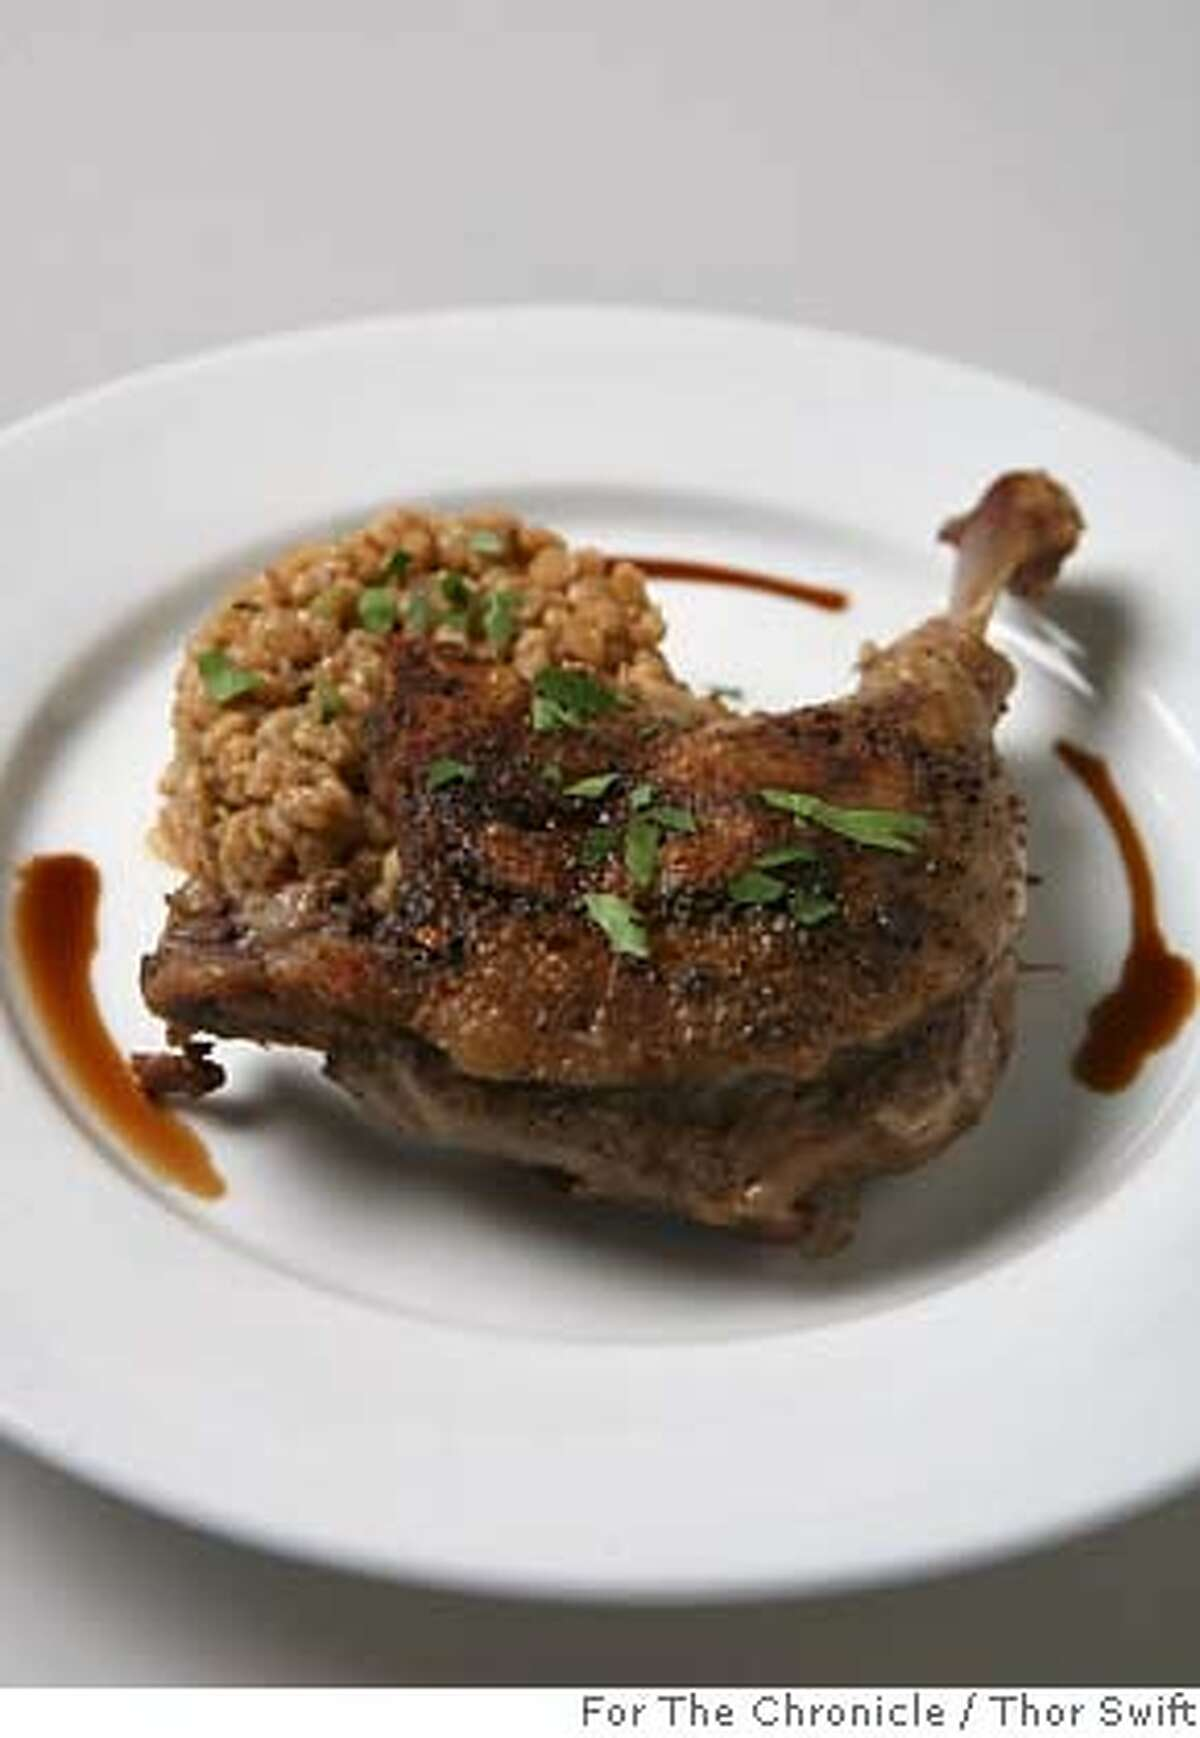 Paring recipe to go with South Central Coast Syrah, spiced duck leg confit with winter root begtables and farro risotto from Villa Creek Robles chef Tom Fundaro, photographed at the San Francisco Chronicle studio, Thursday, Sept., 27, 2007. Thor Swift For The San Francisco Chronicle